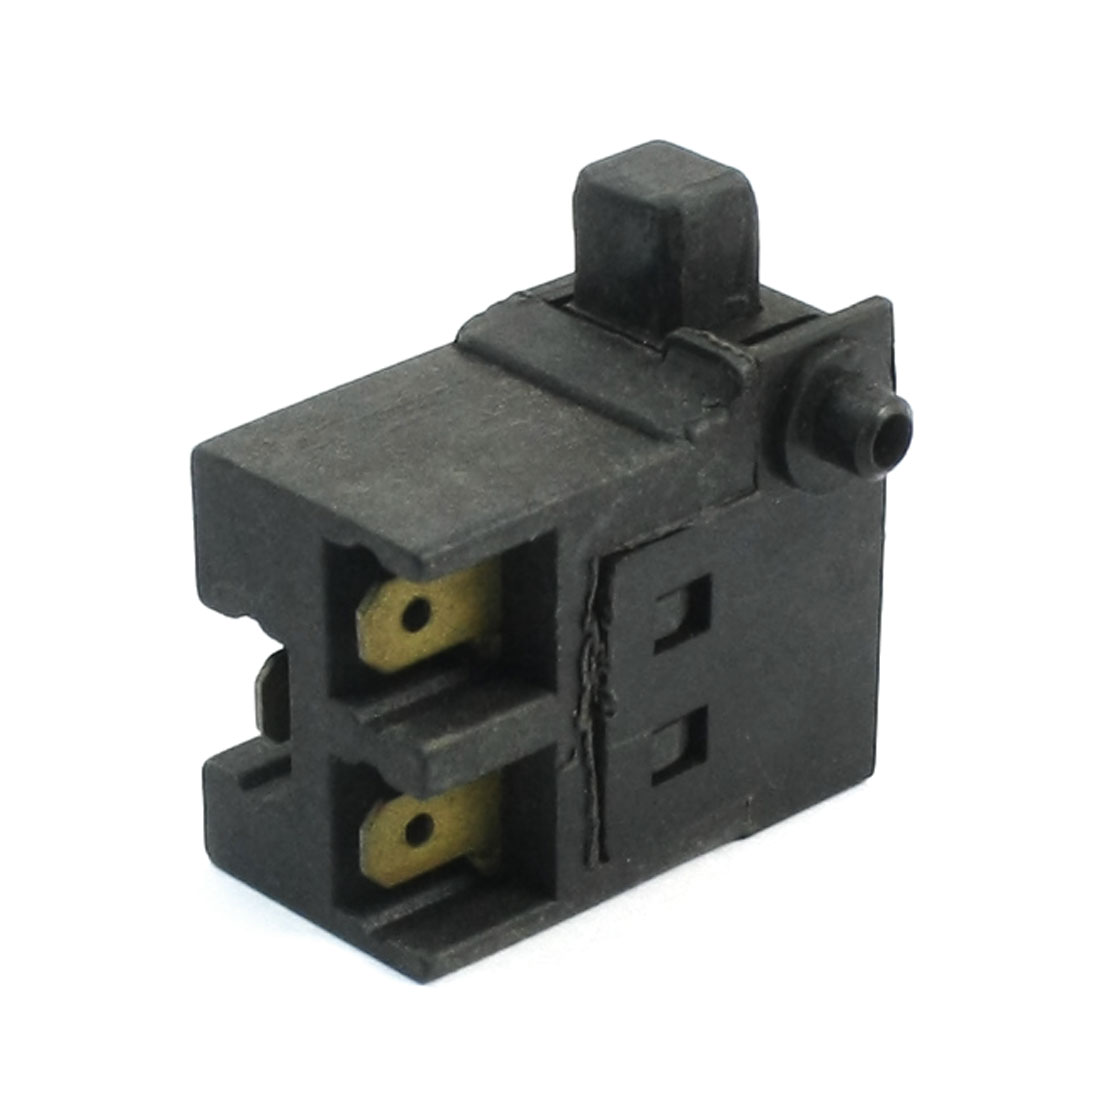 Momentary Electric Tool Switch AC 250V 8A SPDT for Makita 1030 Cutter Machine